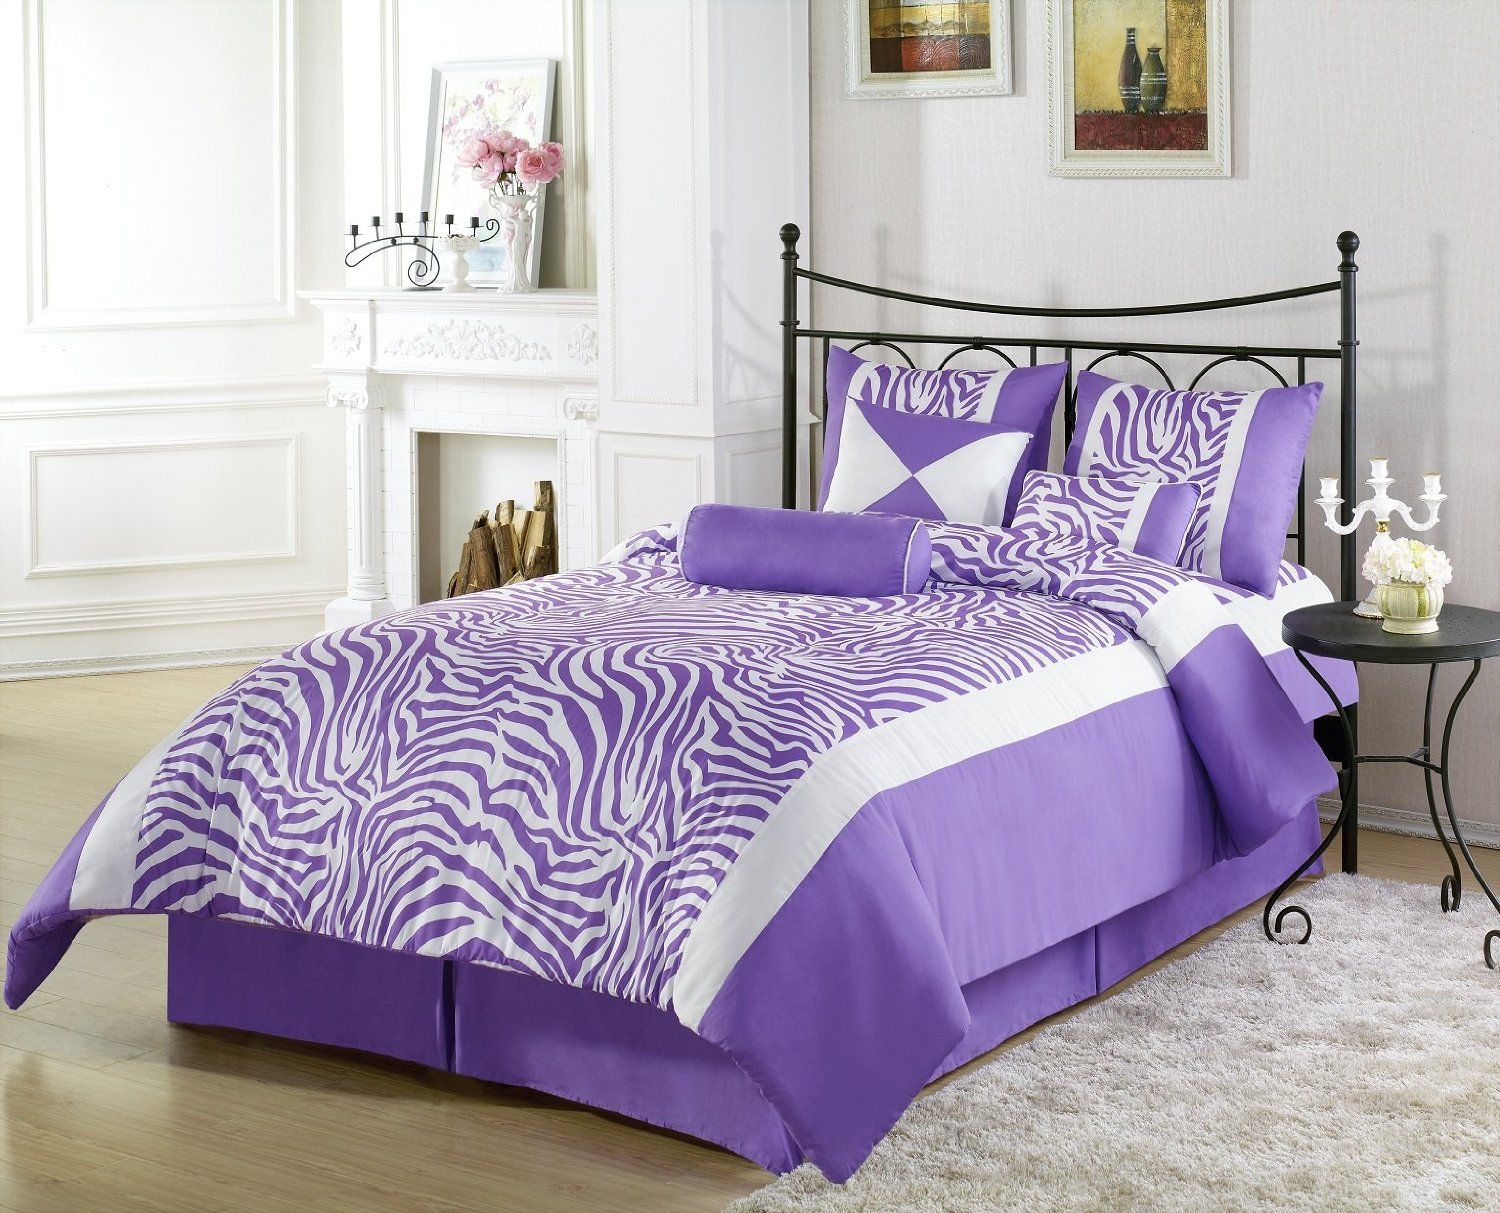 Amazing How To Incorporate Zebra Print Into Your Bedroomu0027s Décor